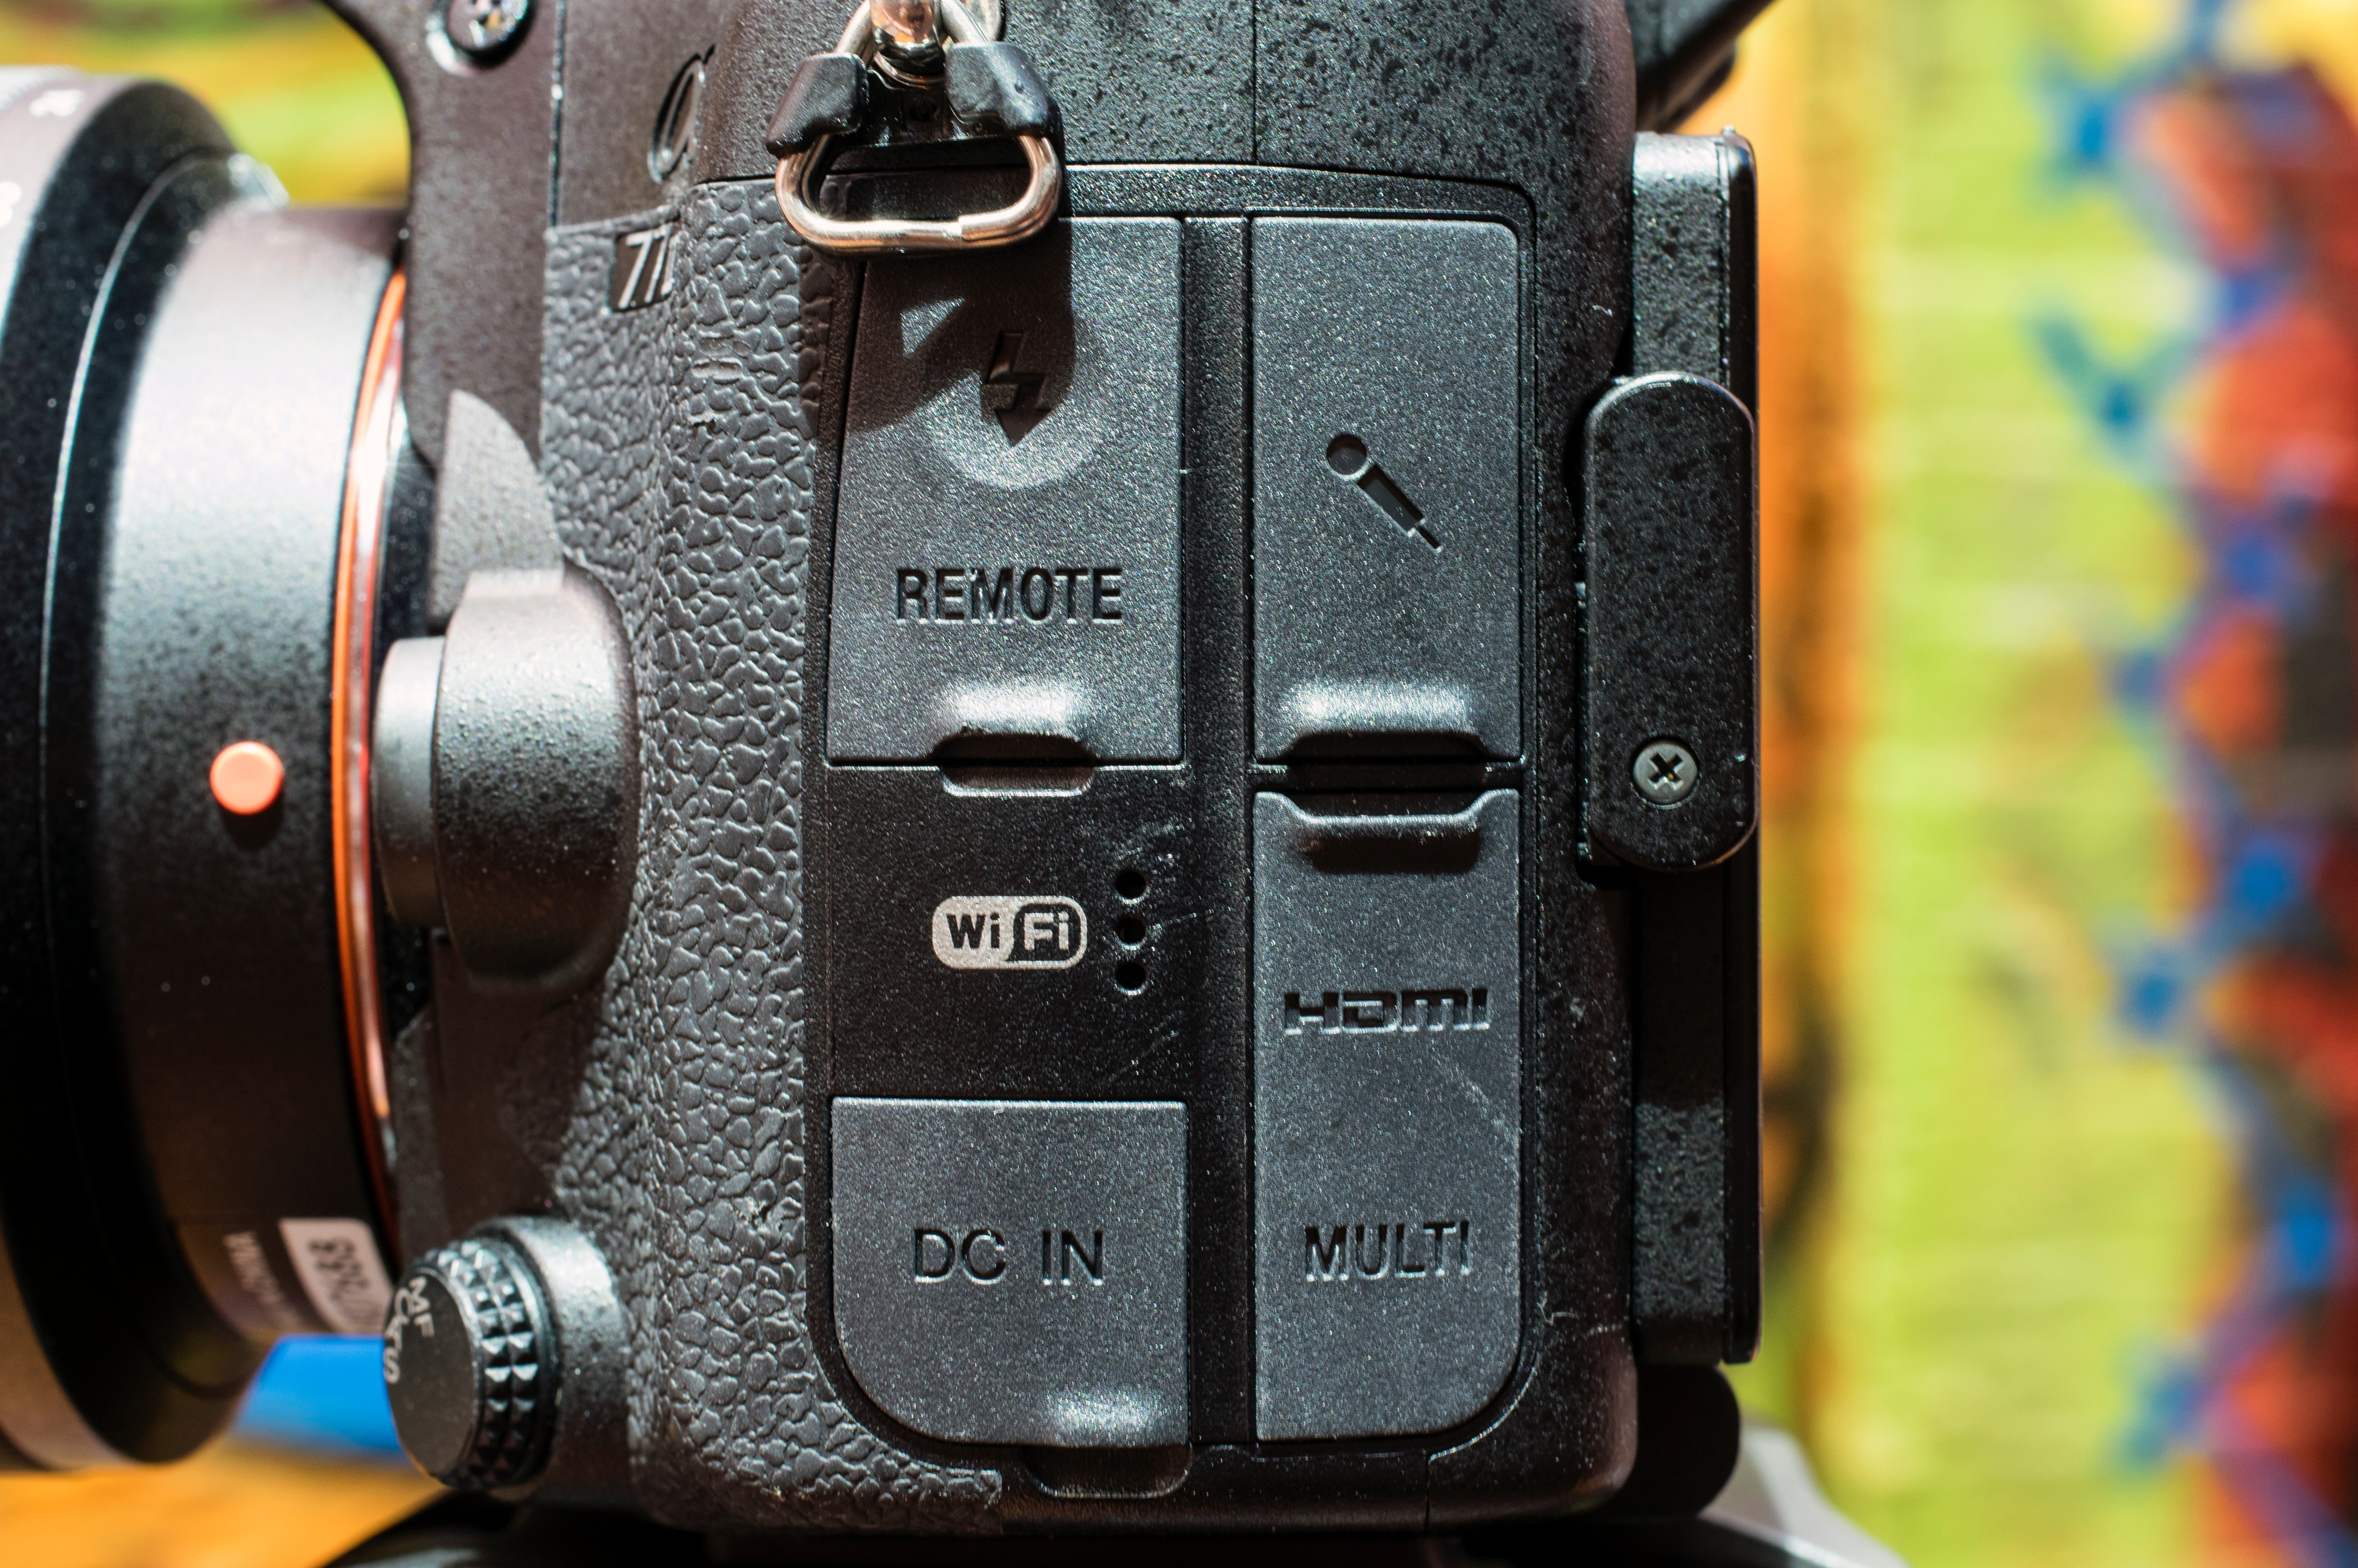 The A77II offers many ports including DC IN, HDMI, USB, and a mic jack.